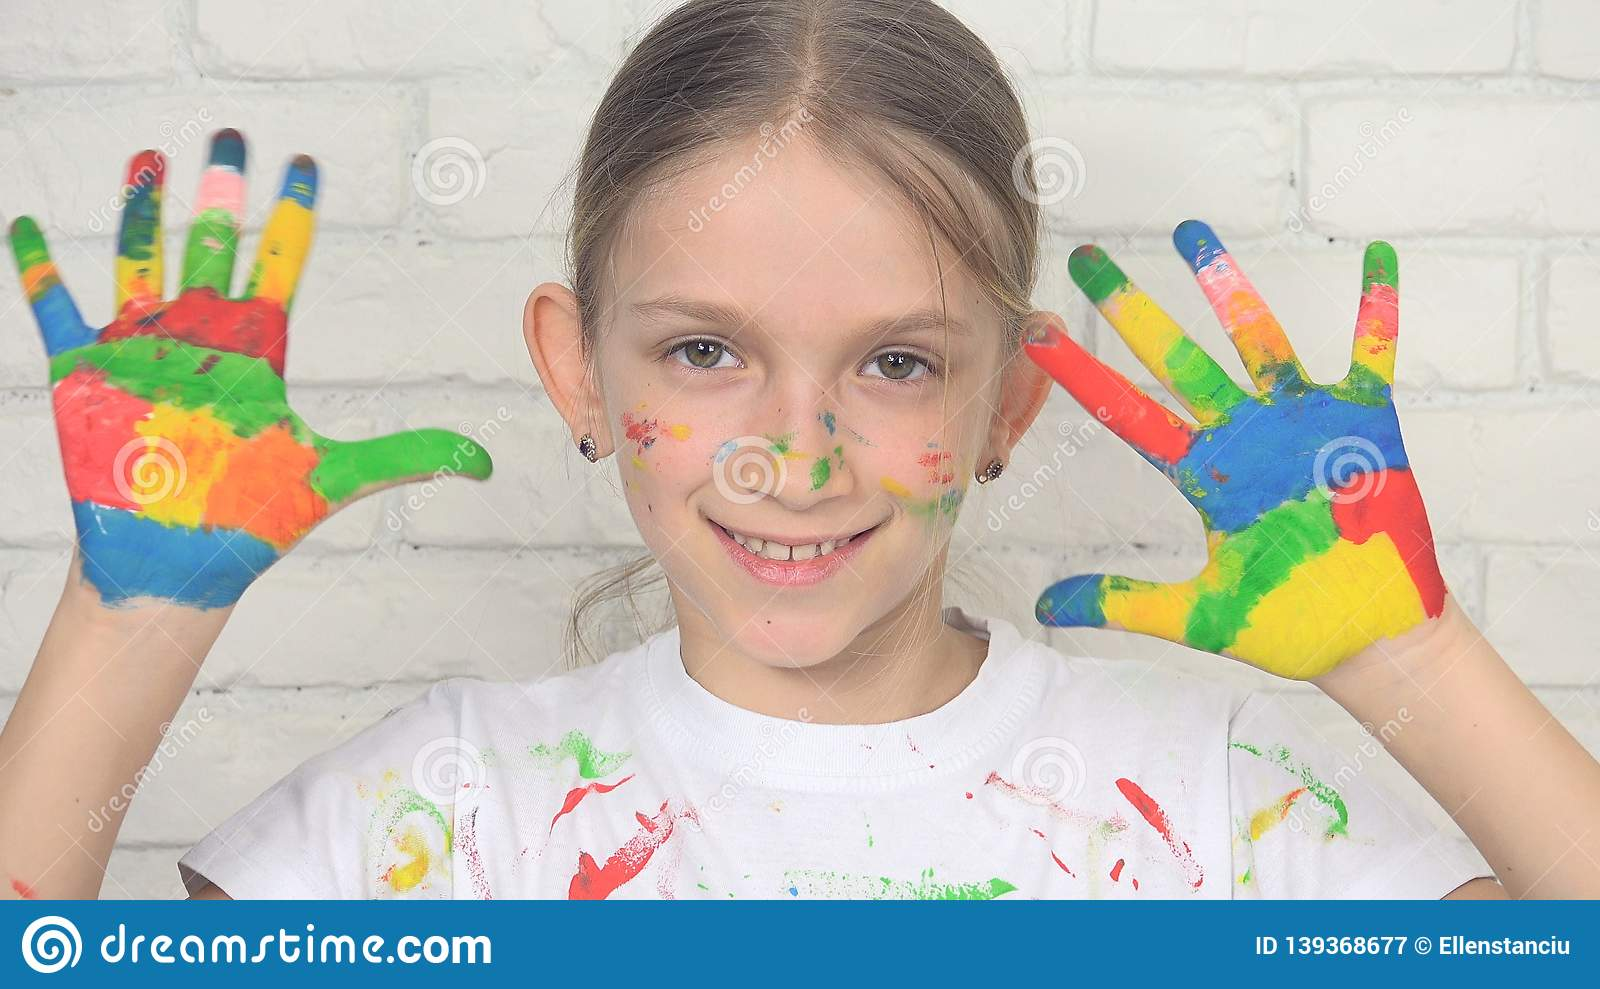 Child Playing Painted Hands, Kid Looking in Camera, Smiling School Girl Face